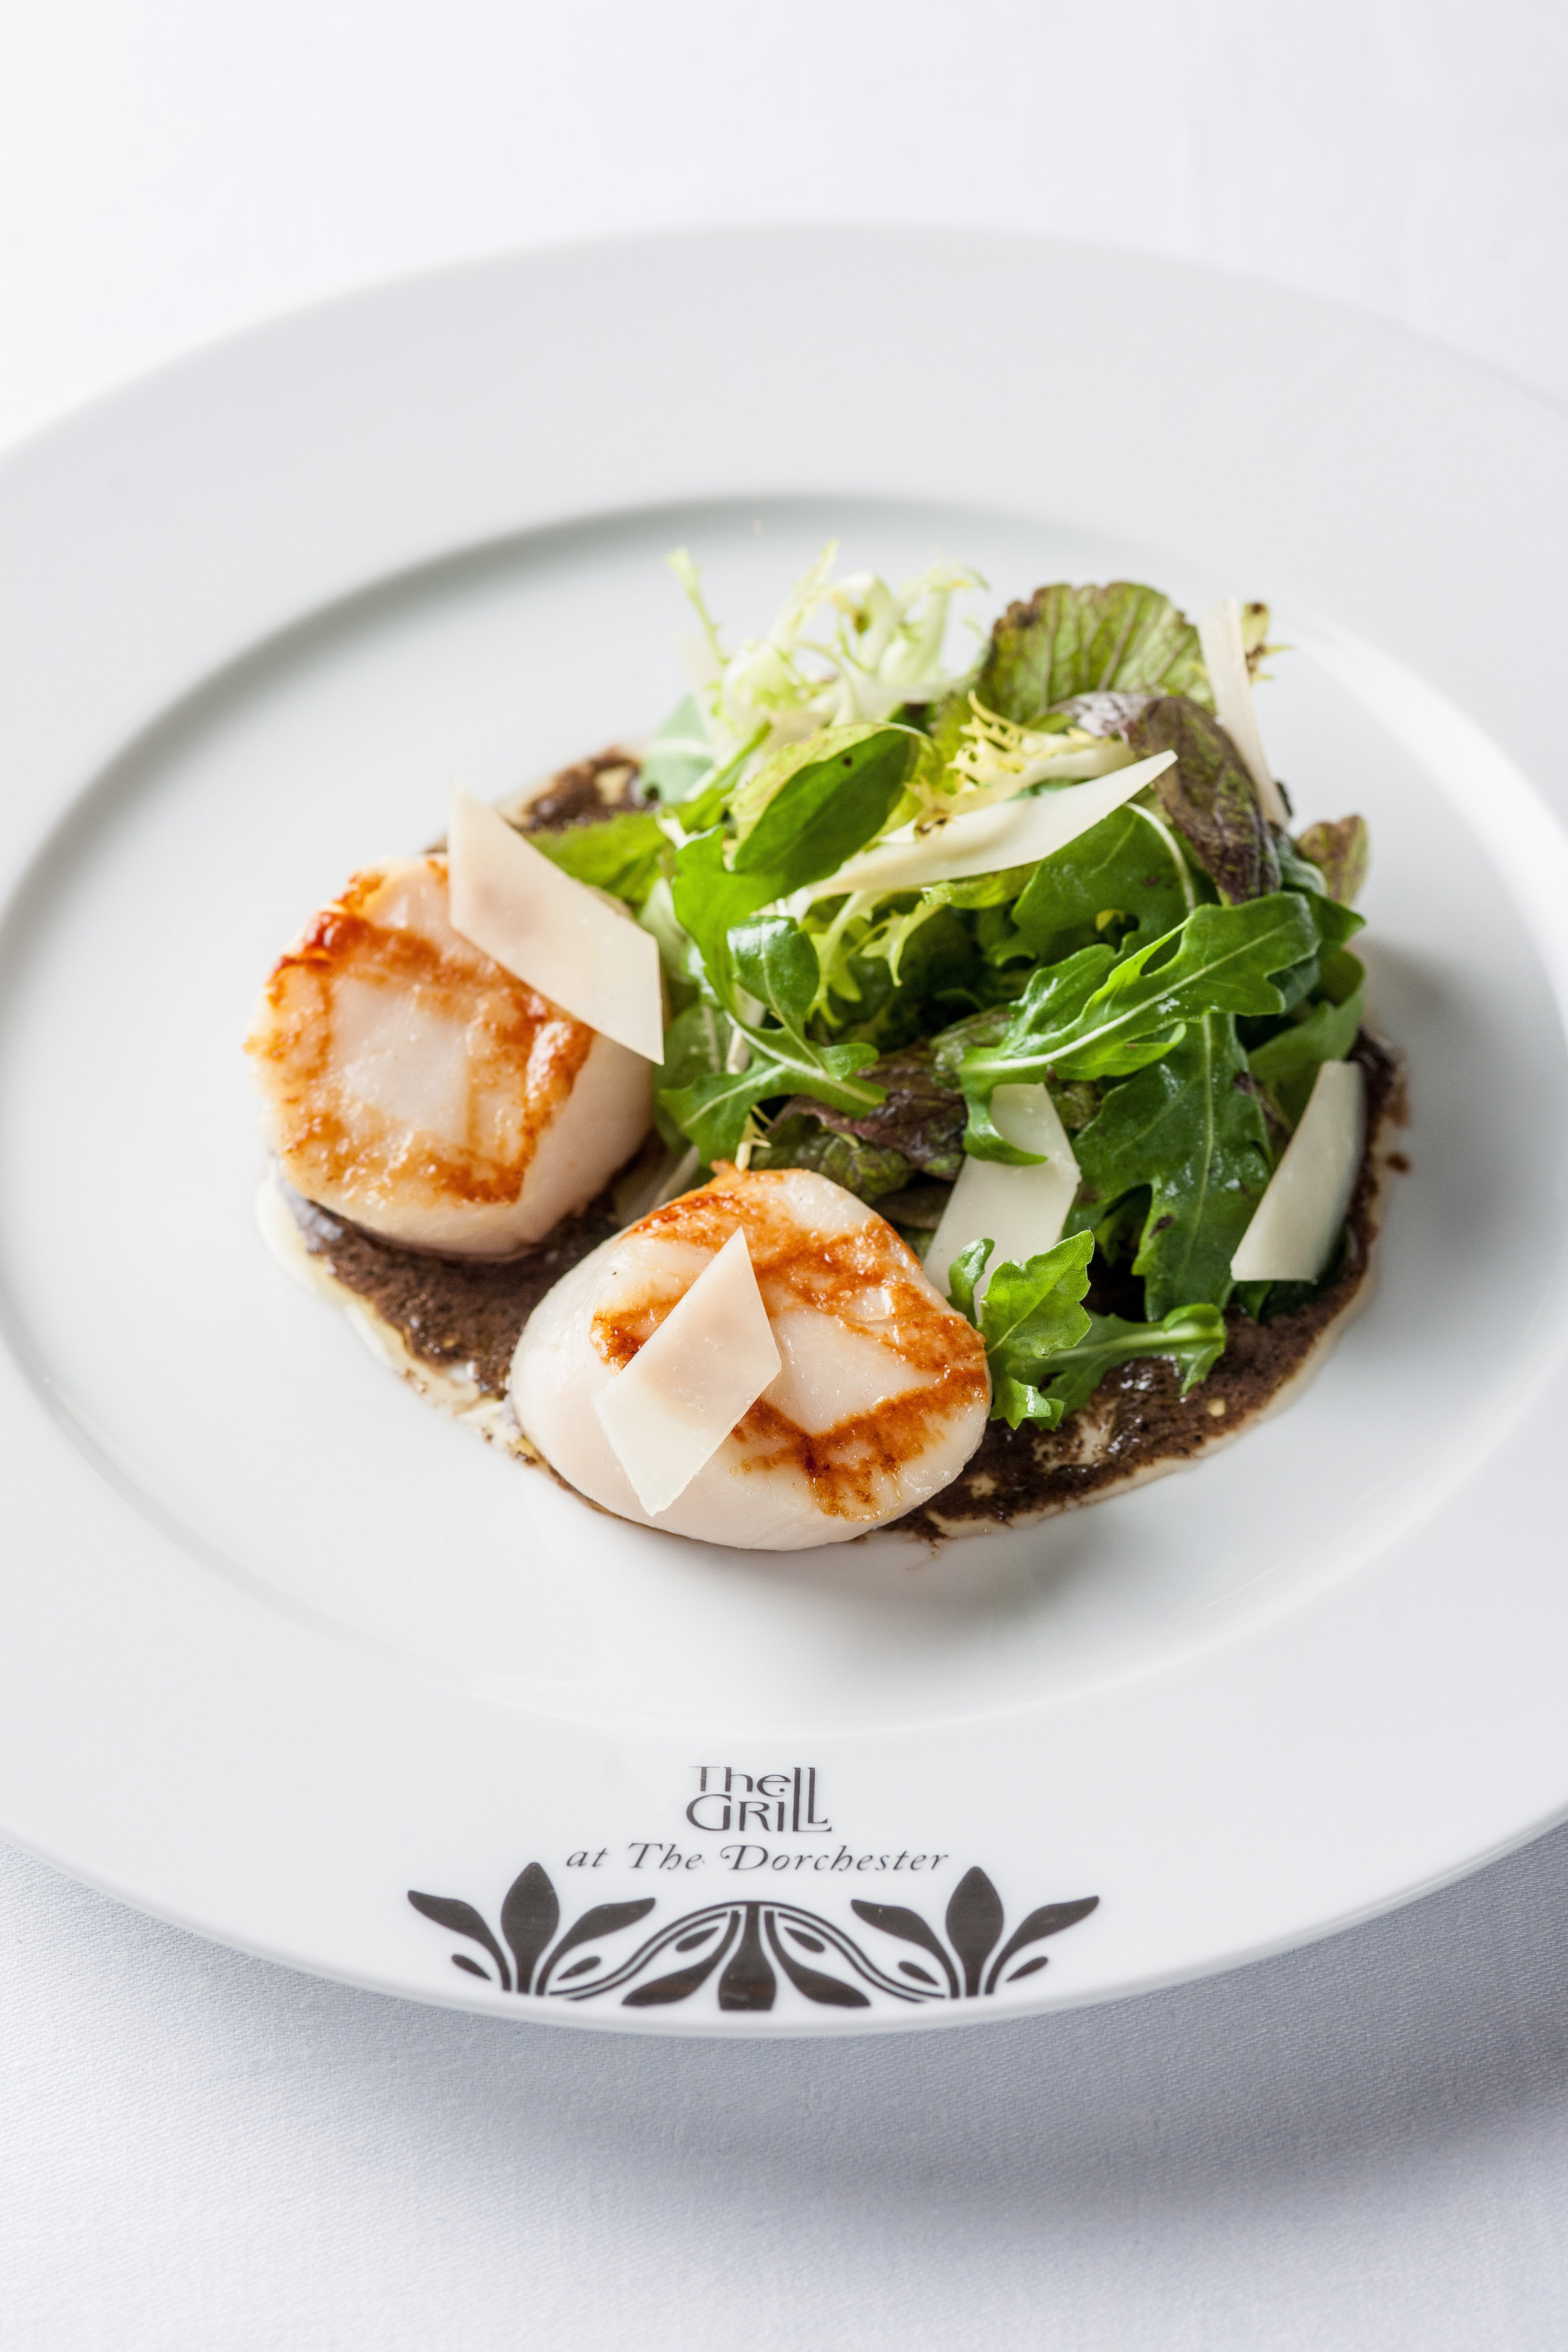 The Grill at The Dorchester - Grilled hand-dived scallops, autumn salad.jpg